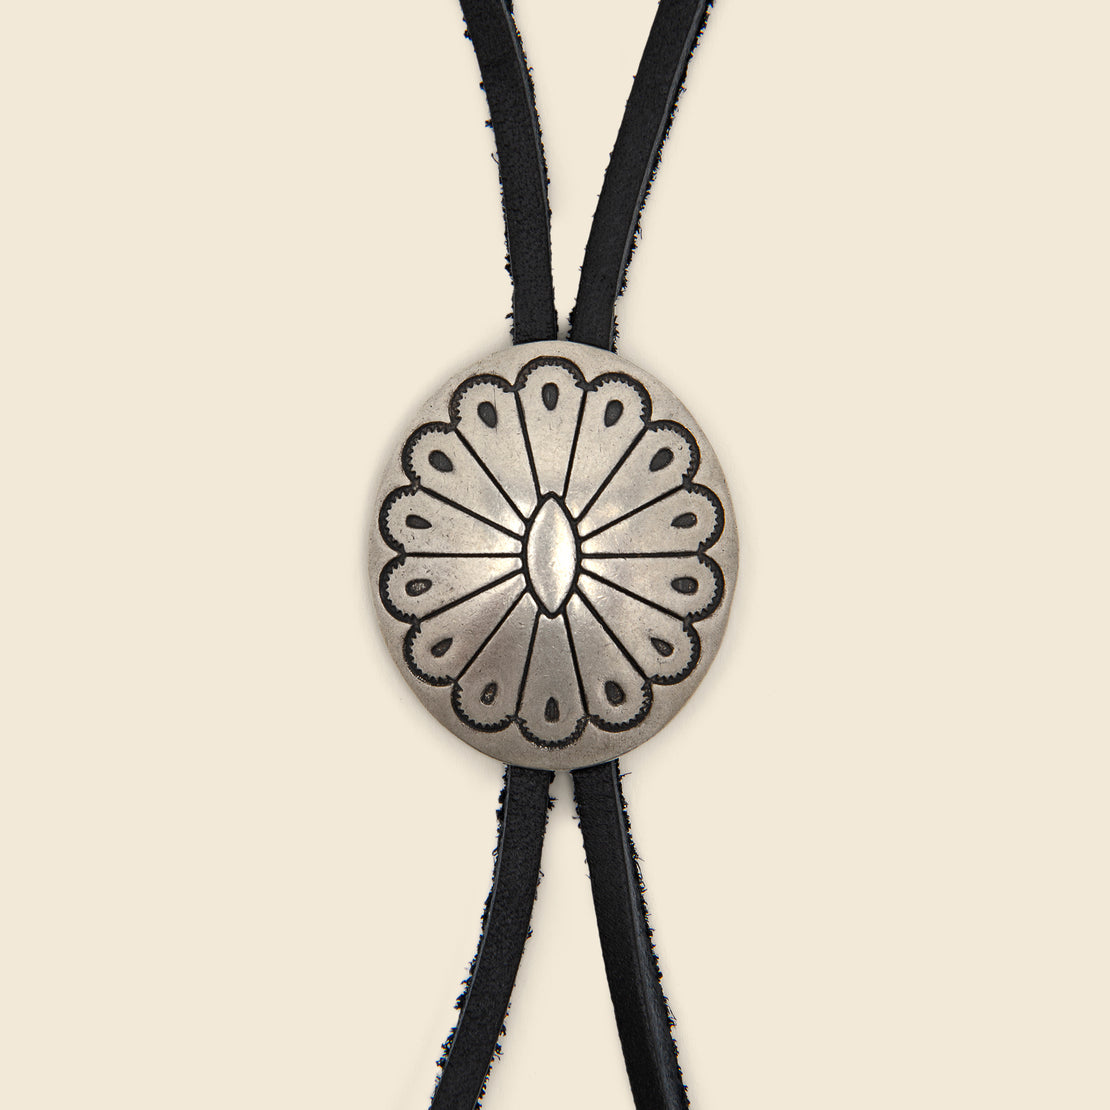 Leather Bolo Tie - Black/Flower Concho